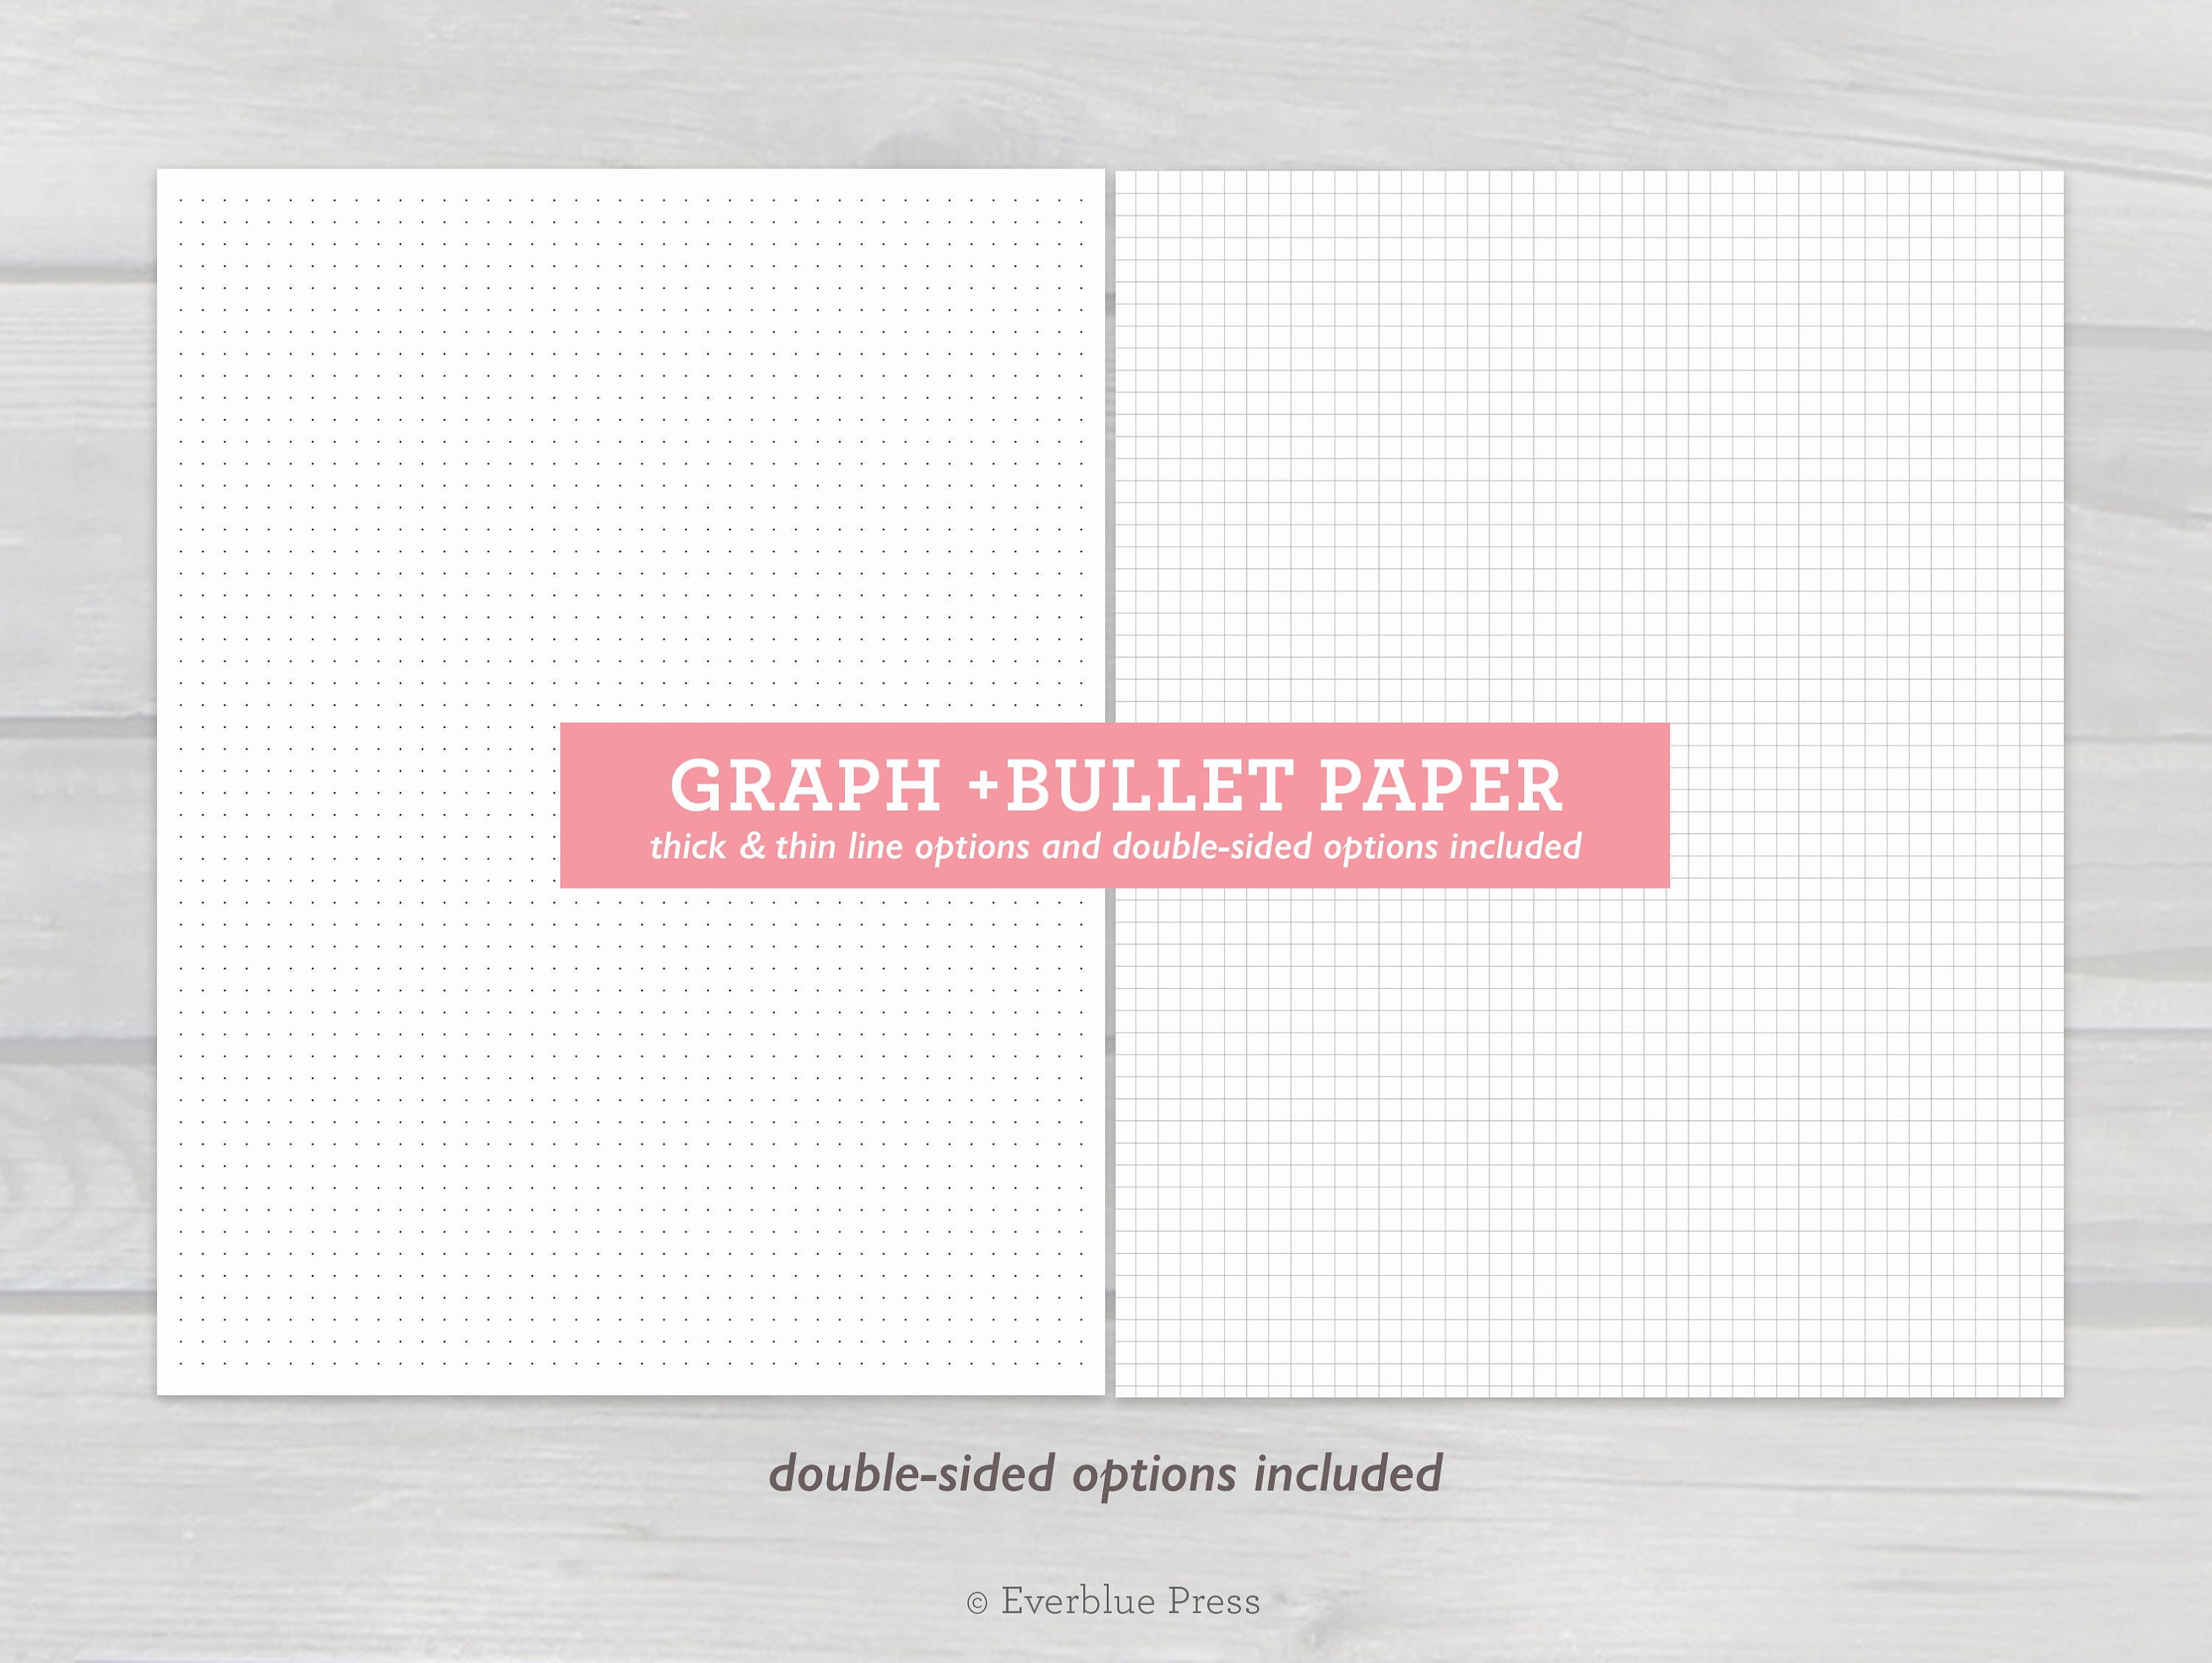 photograph relating to Printable Dot Paper for Bullet Journal referred to as Printable Graph Paper and Bullet Magazine Dot Paper, 8.5x11\